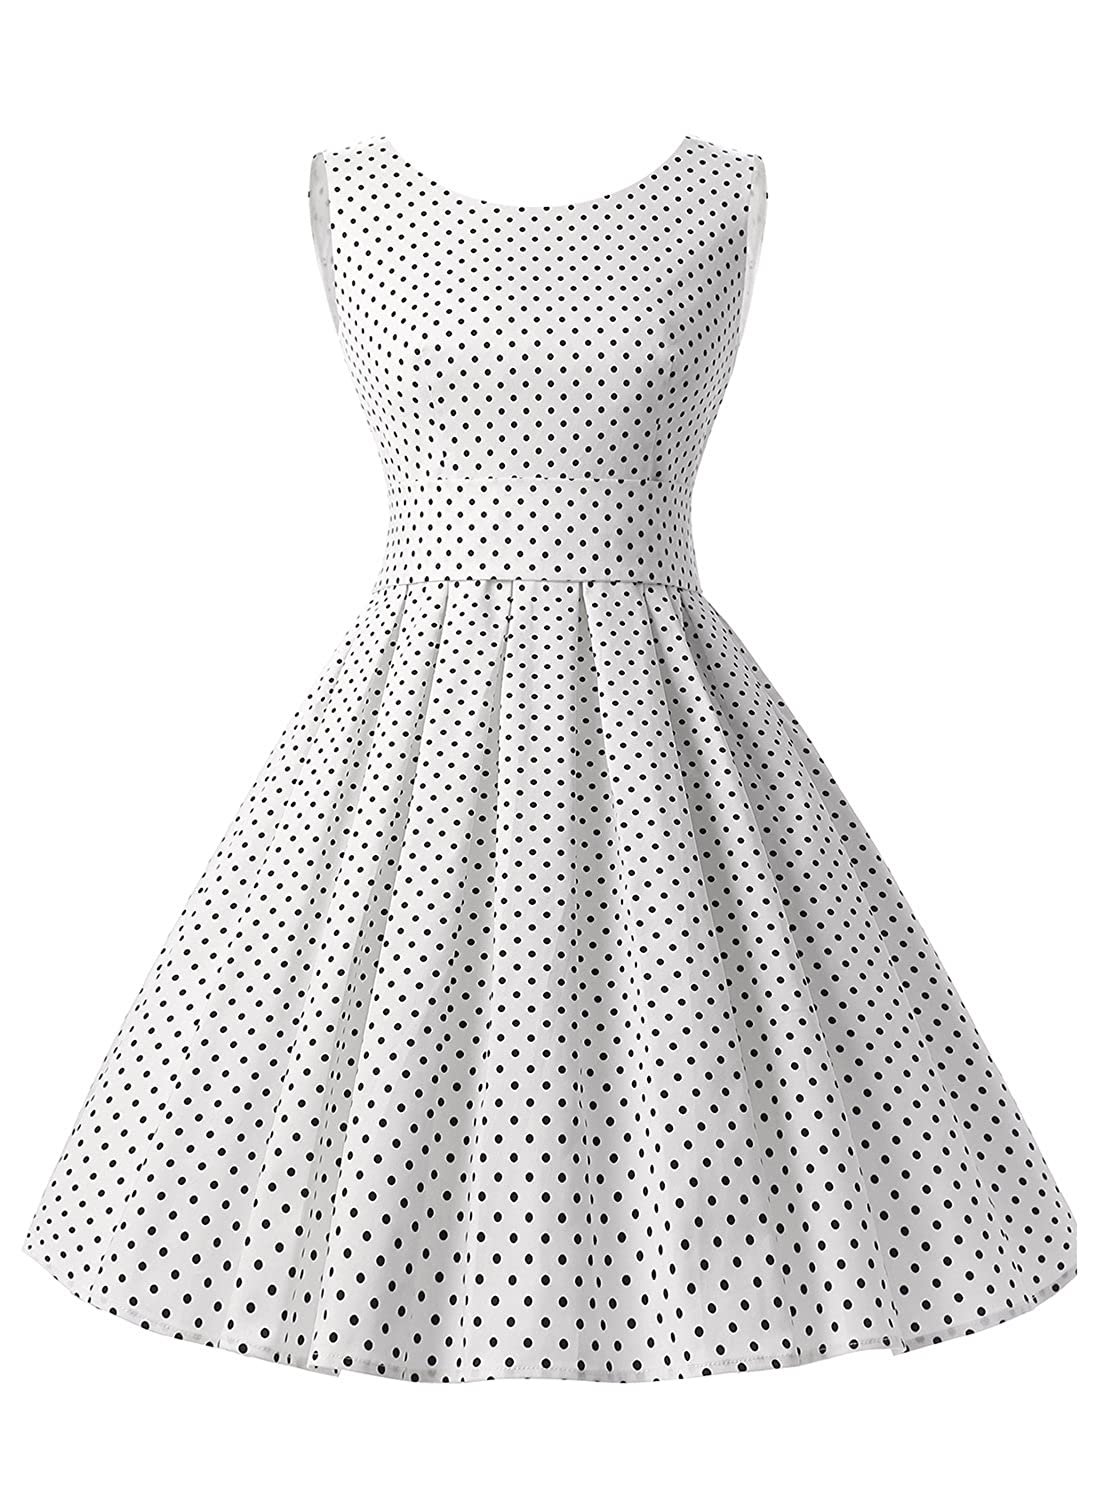 Vintage Polka Dot Dresses – Ditsy 50s Prints Dressystar Vintage 1950s Audrey Hepburn Style Rockabilly Swing Party Prom Dress $24.69 AT vintagedancer.com